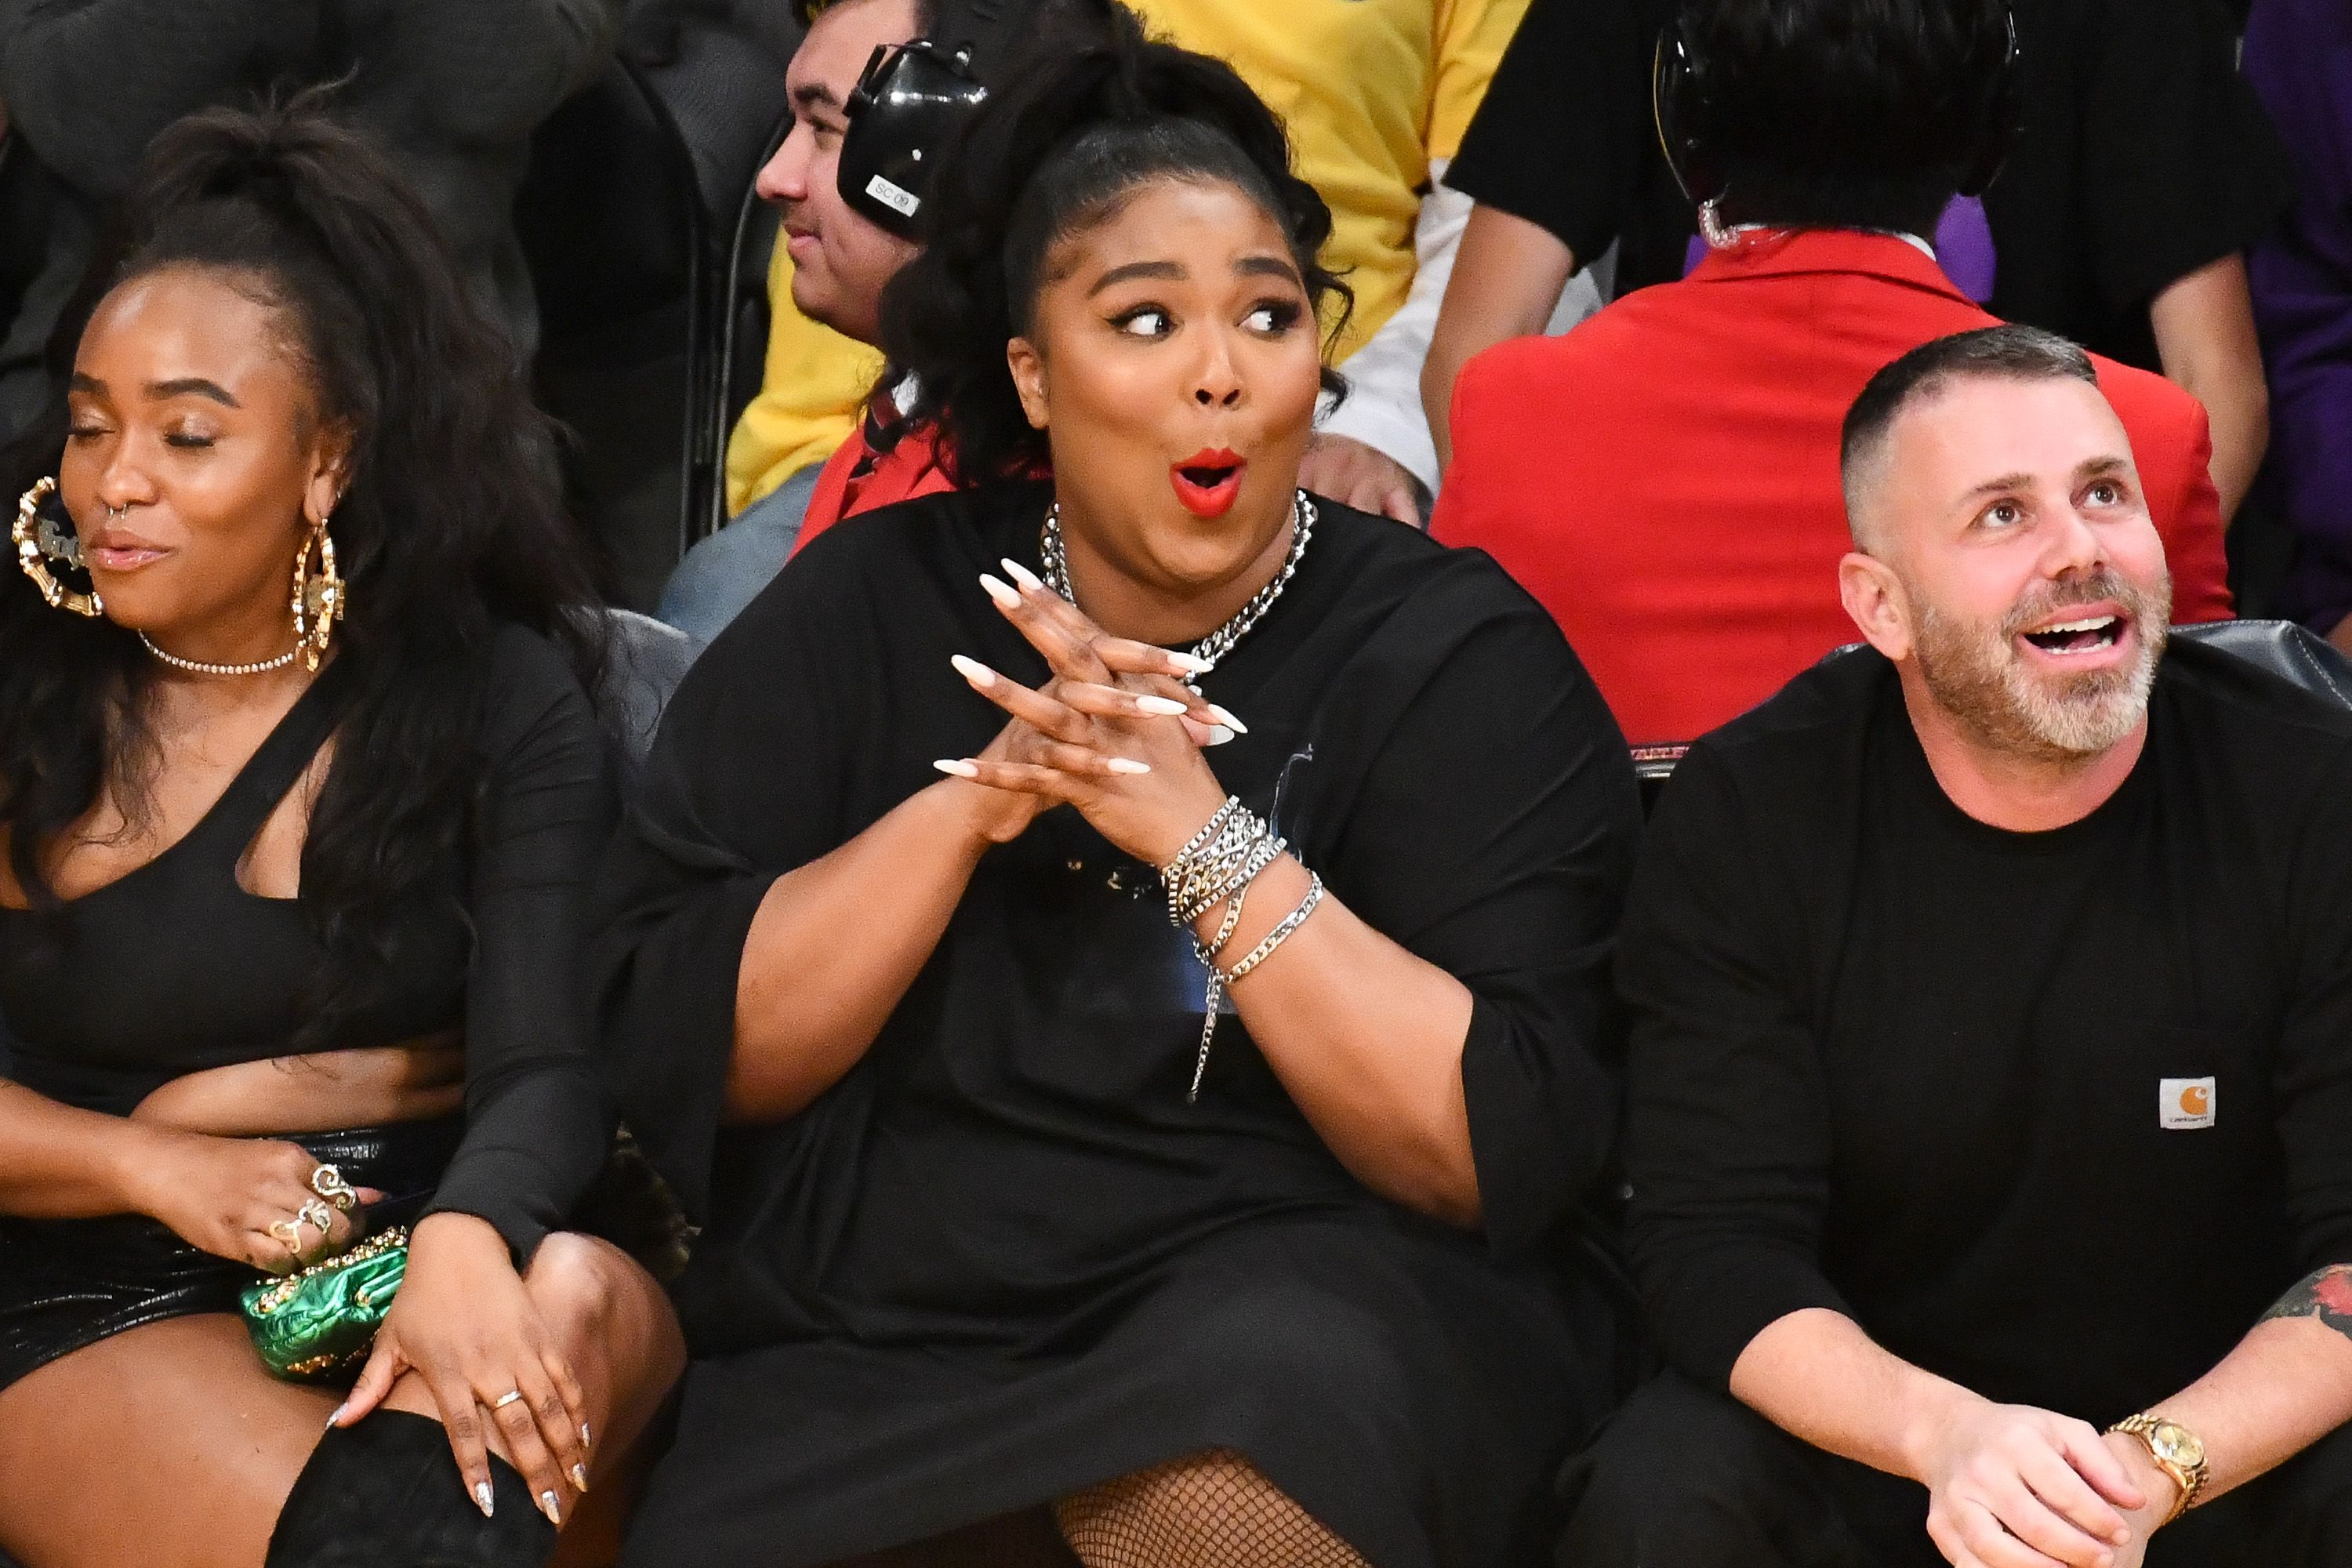 Lizzo Twerked in a Thong on the Jumbotron at an LA Lakers Game